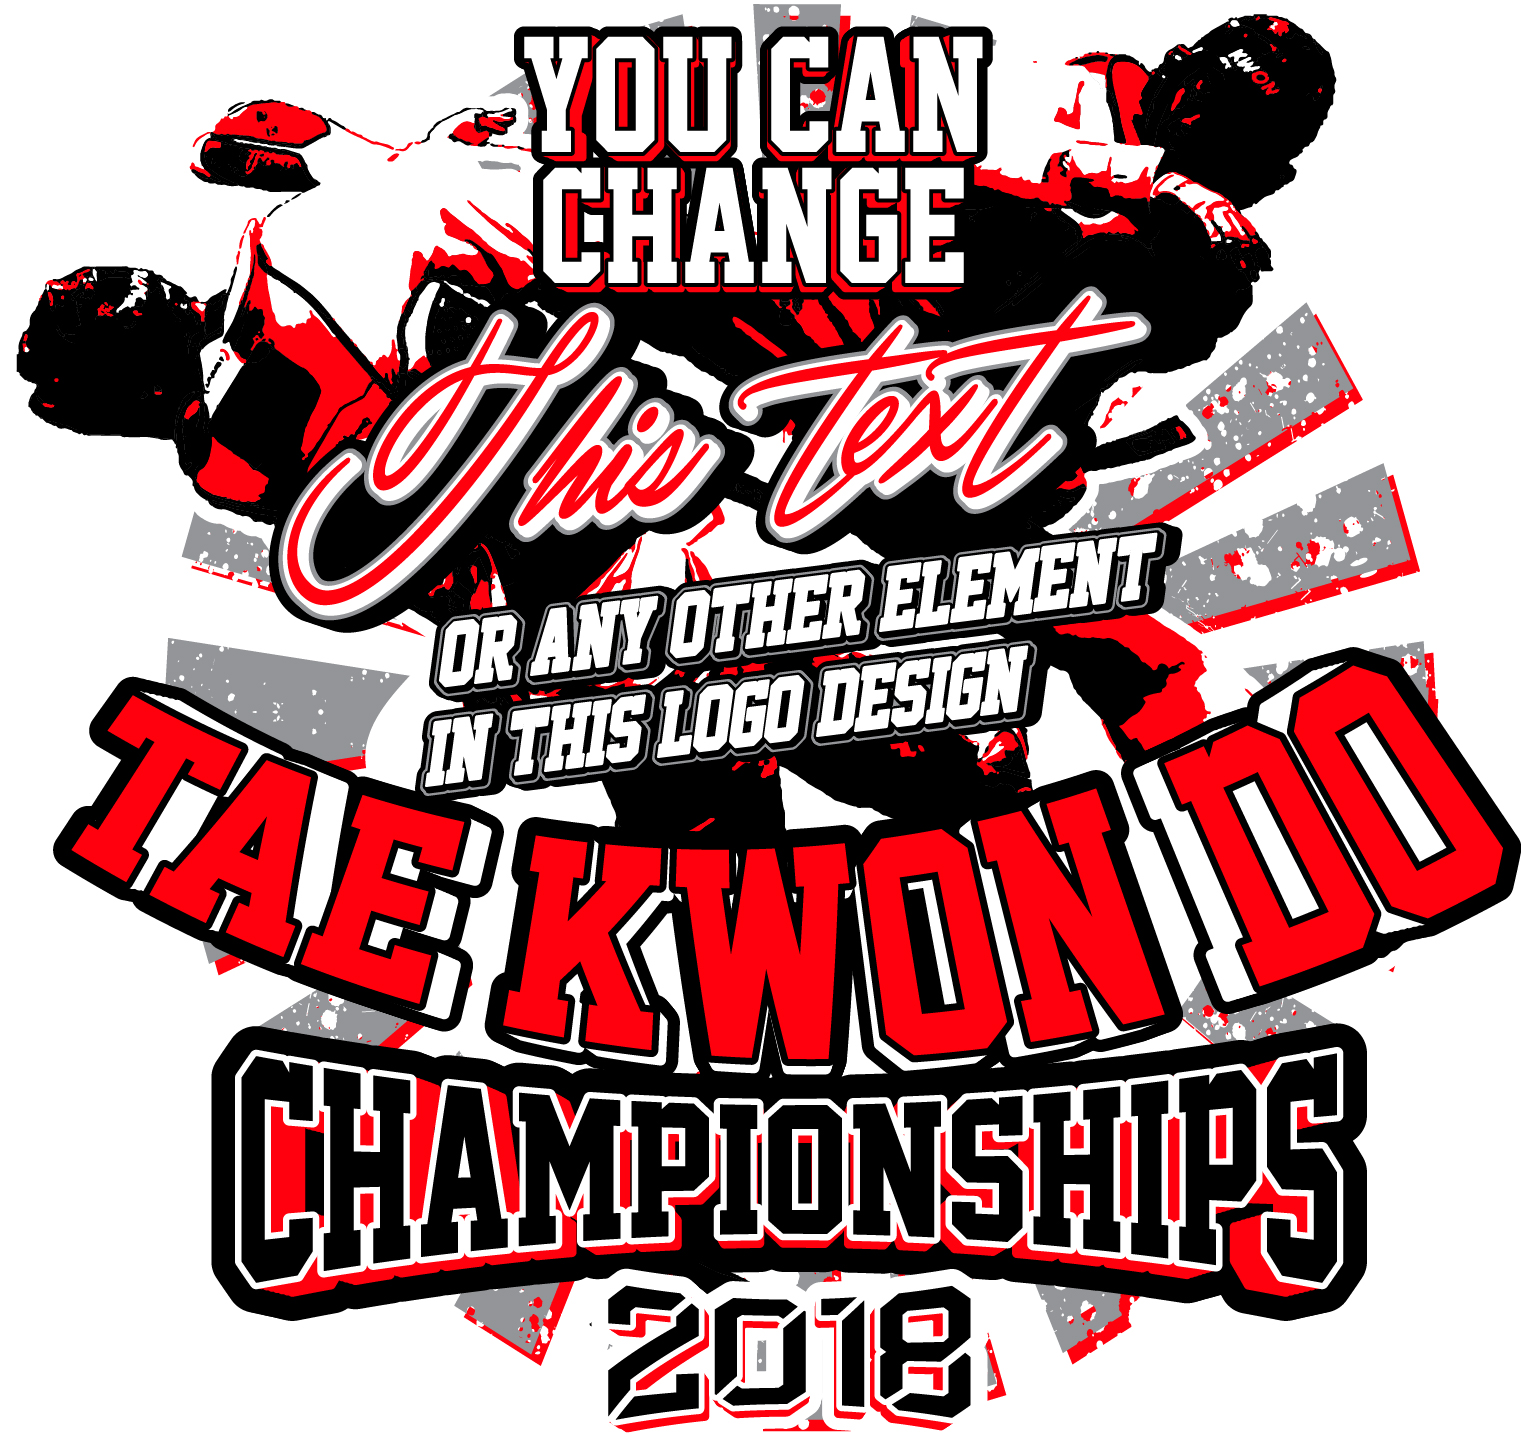 TAEKWONDO T-SHIRT DESIGN READY FOR PRINT